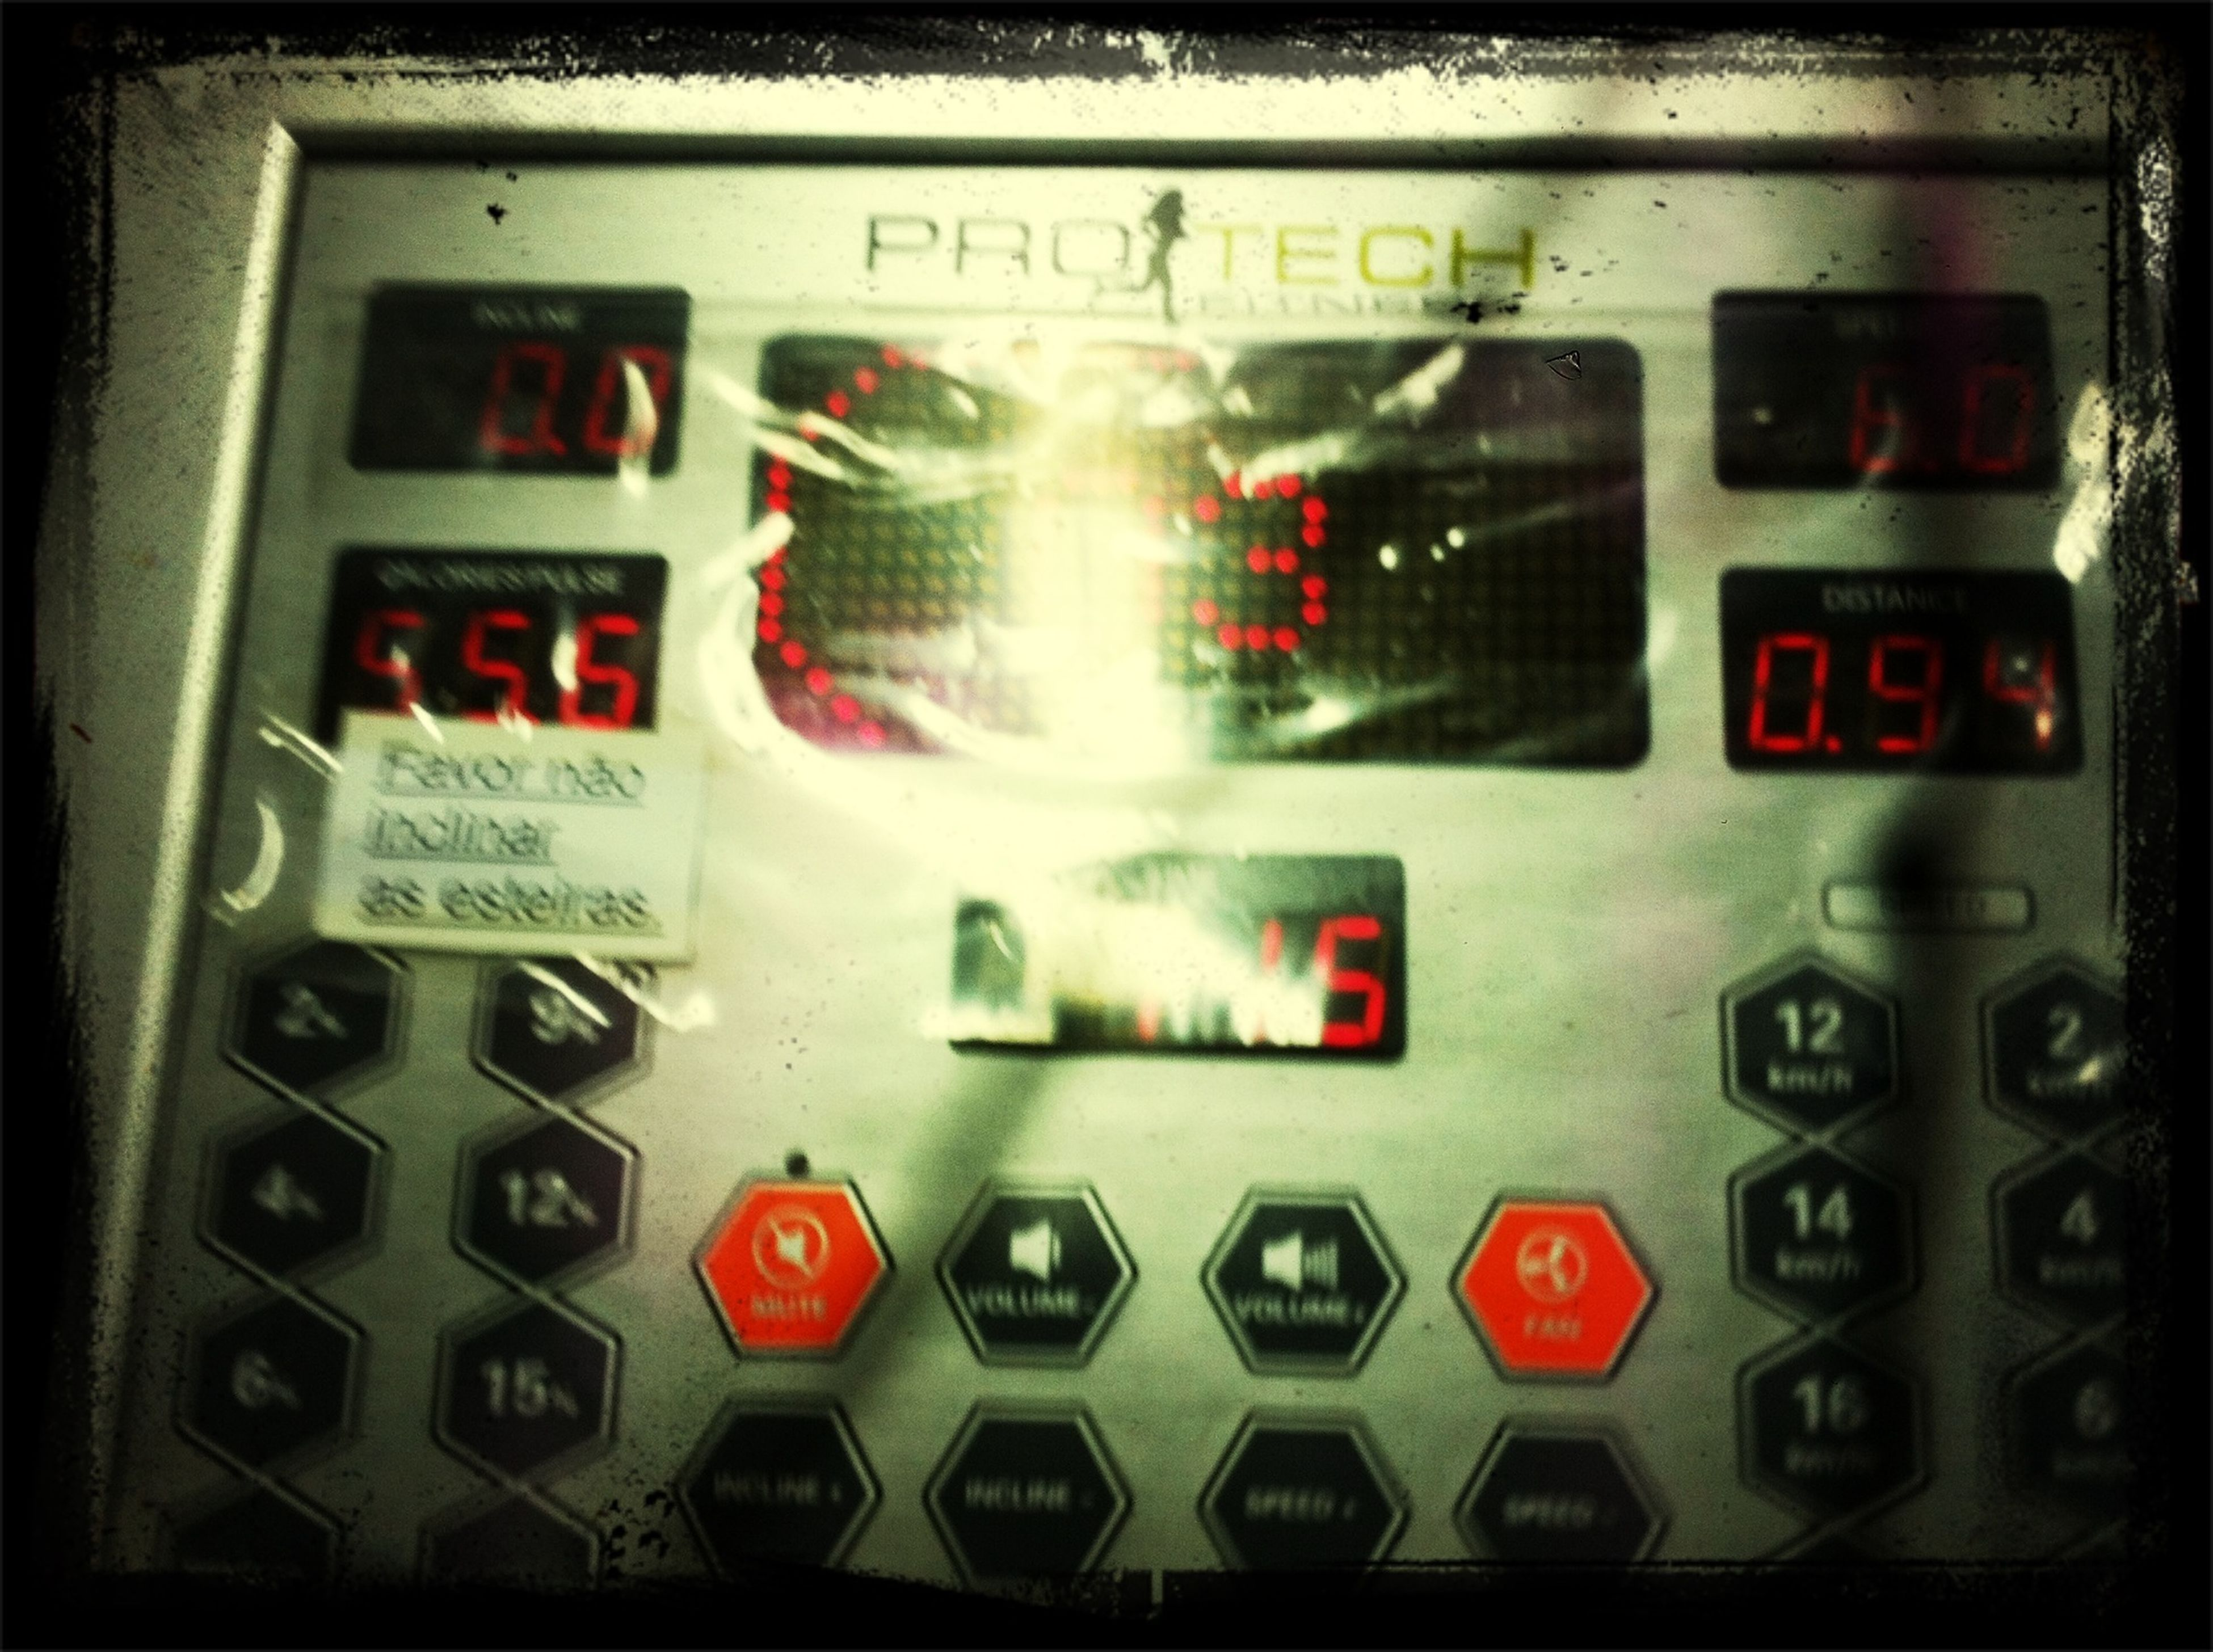 indoors, communication, technology, text, number, close-up, western script, old-fashioned, full frame, metal, connection, retro styled, push button, no people, transportation, red, control panel, telephone, old, control